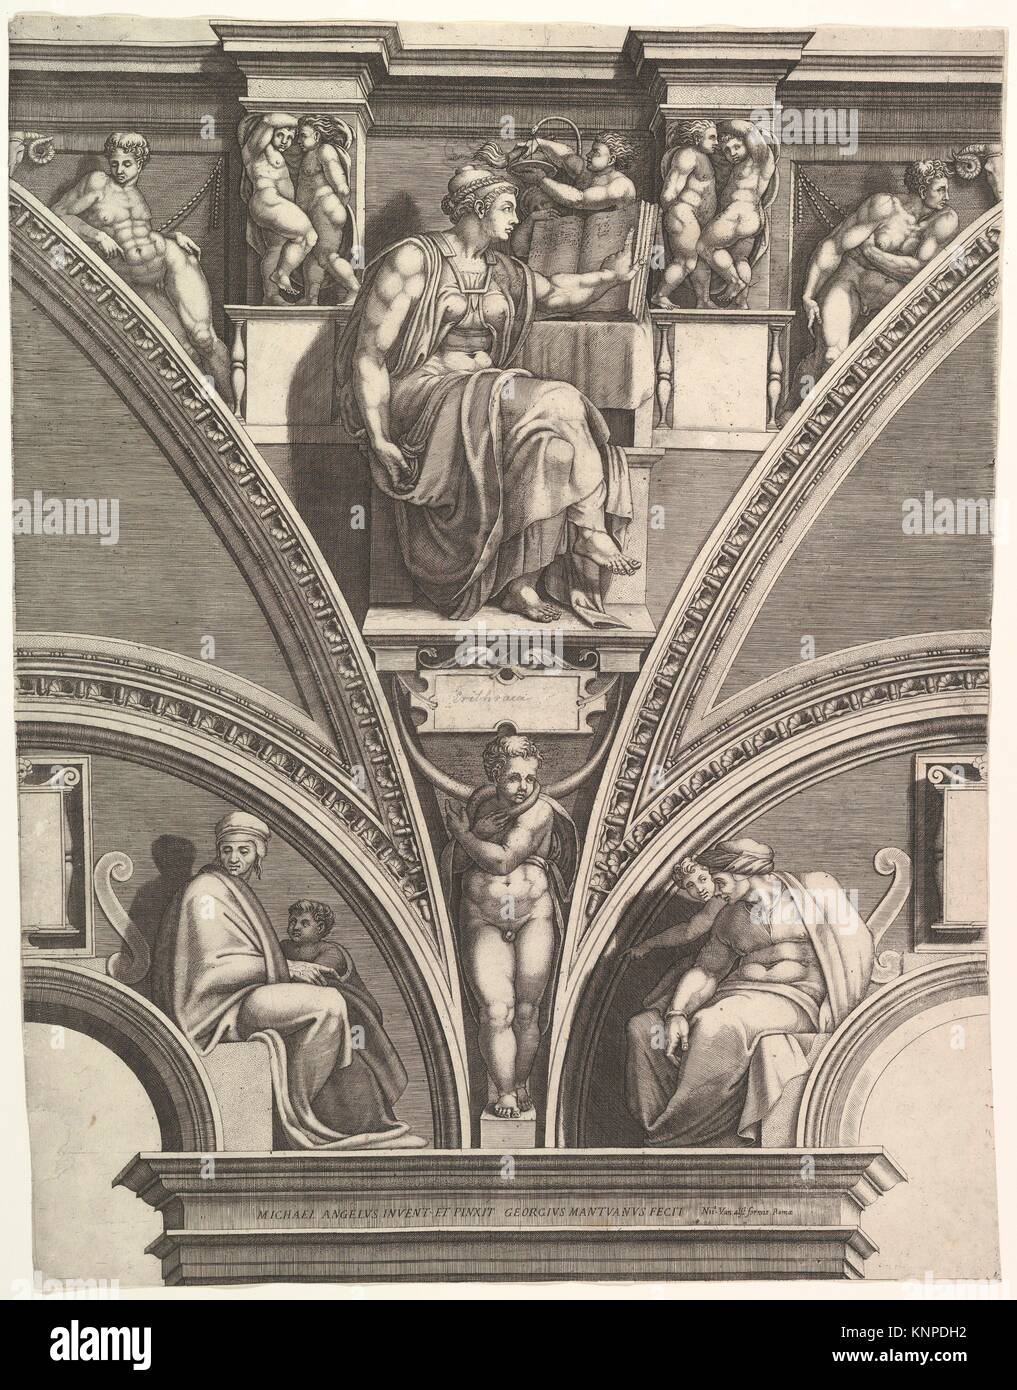 The Eritrean Sibyl; from the series of Prophets and Sibyls in the Sistine Chapel. Artist: Engraved by Giorgio Ghisi Stock Photo